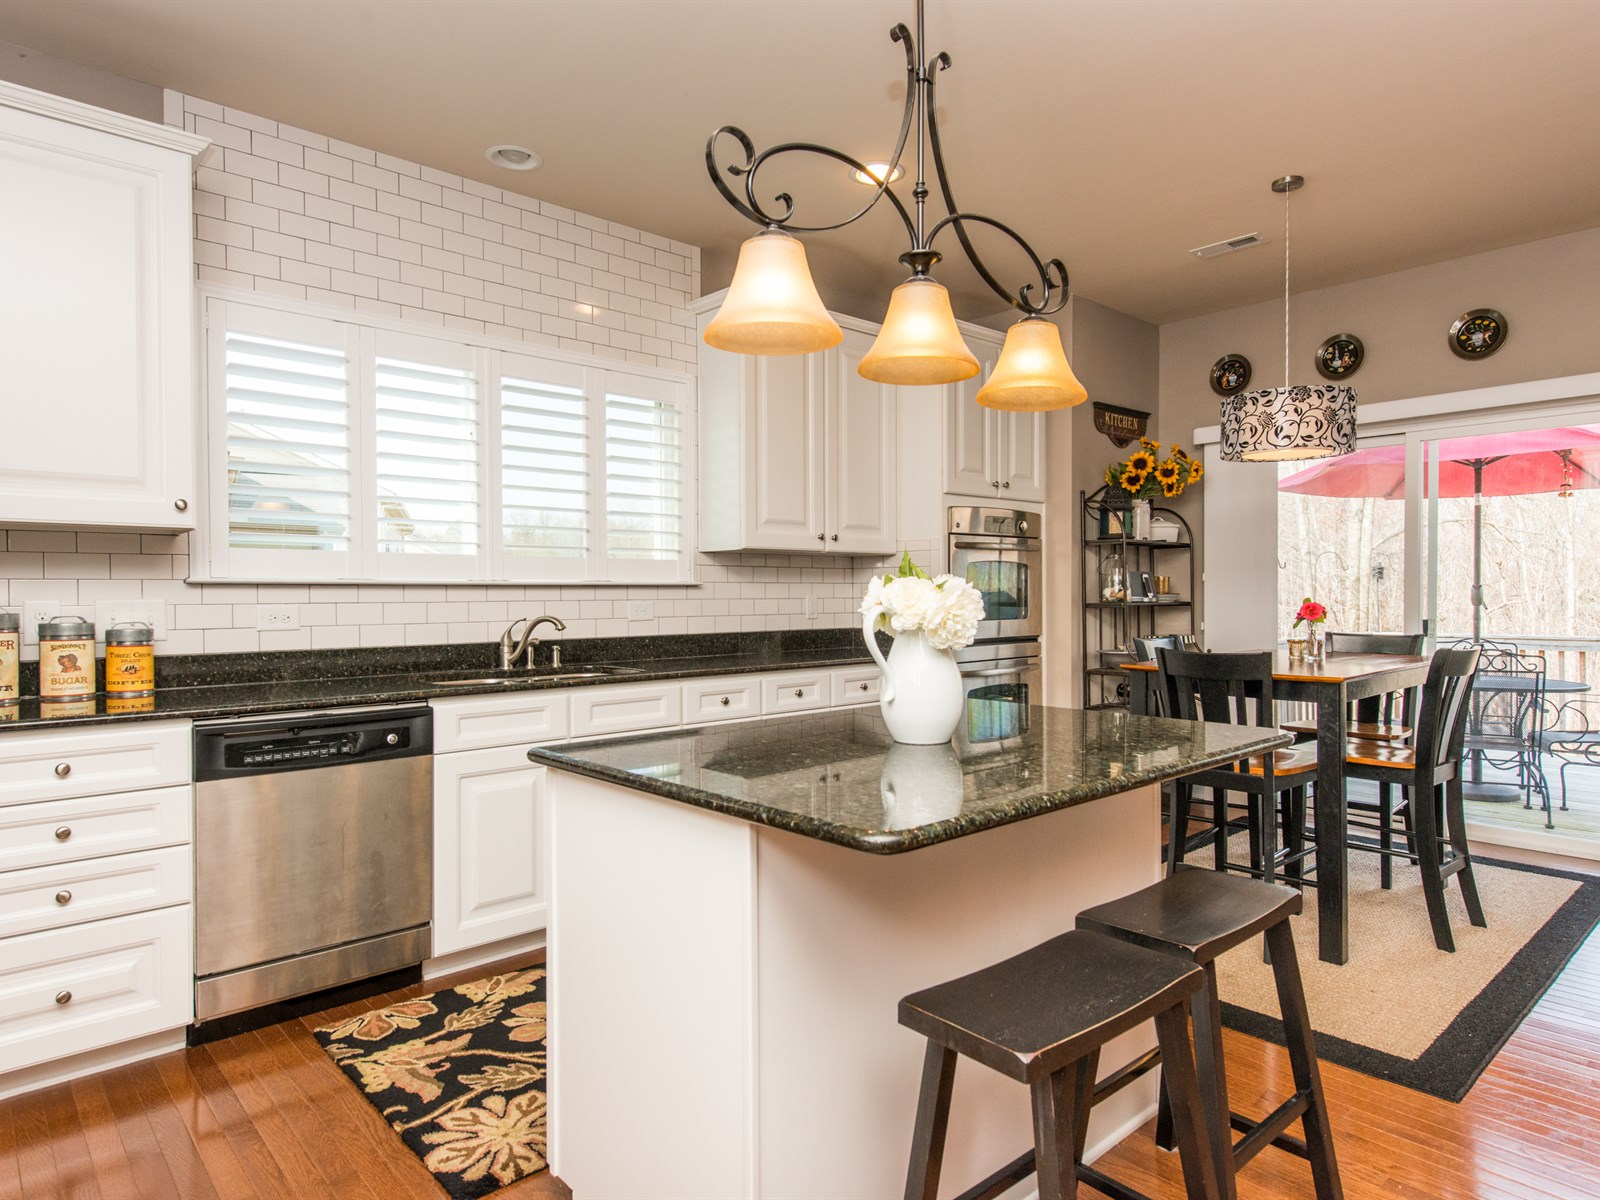 Stylish kitchen in Holly Glen home in Holly Springs, NC